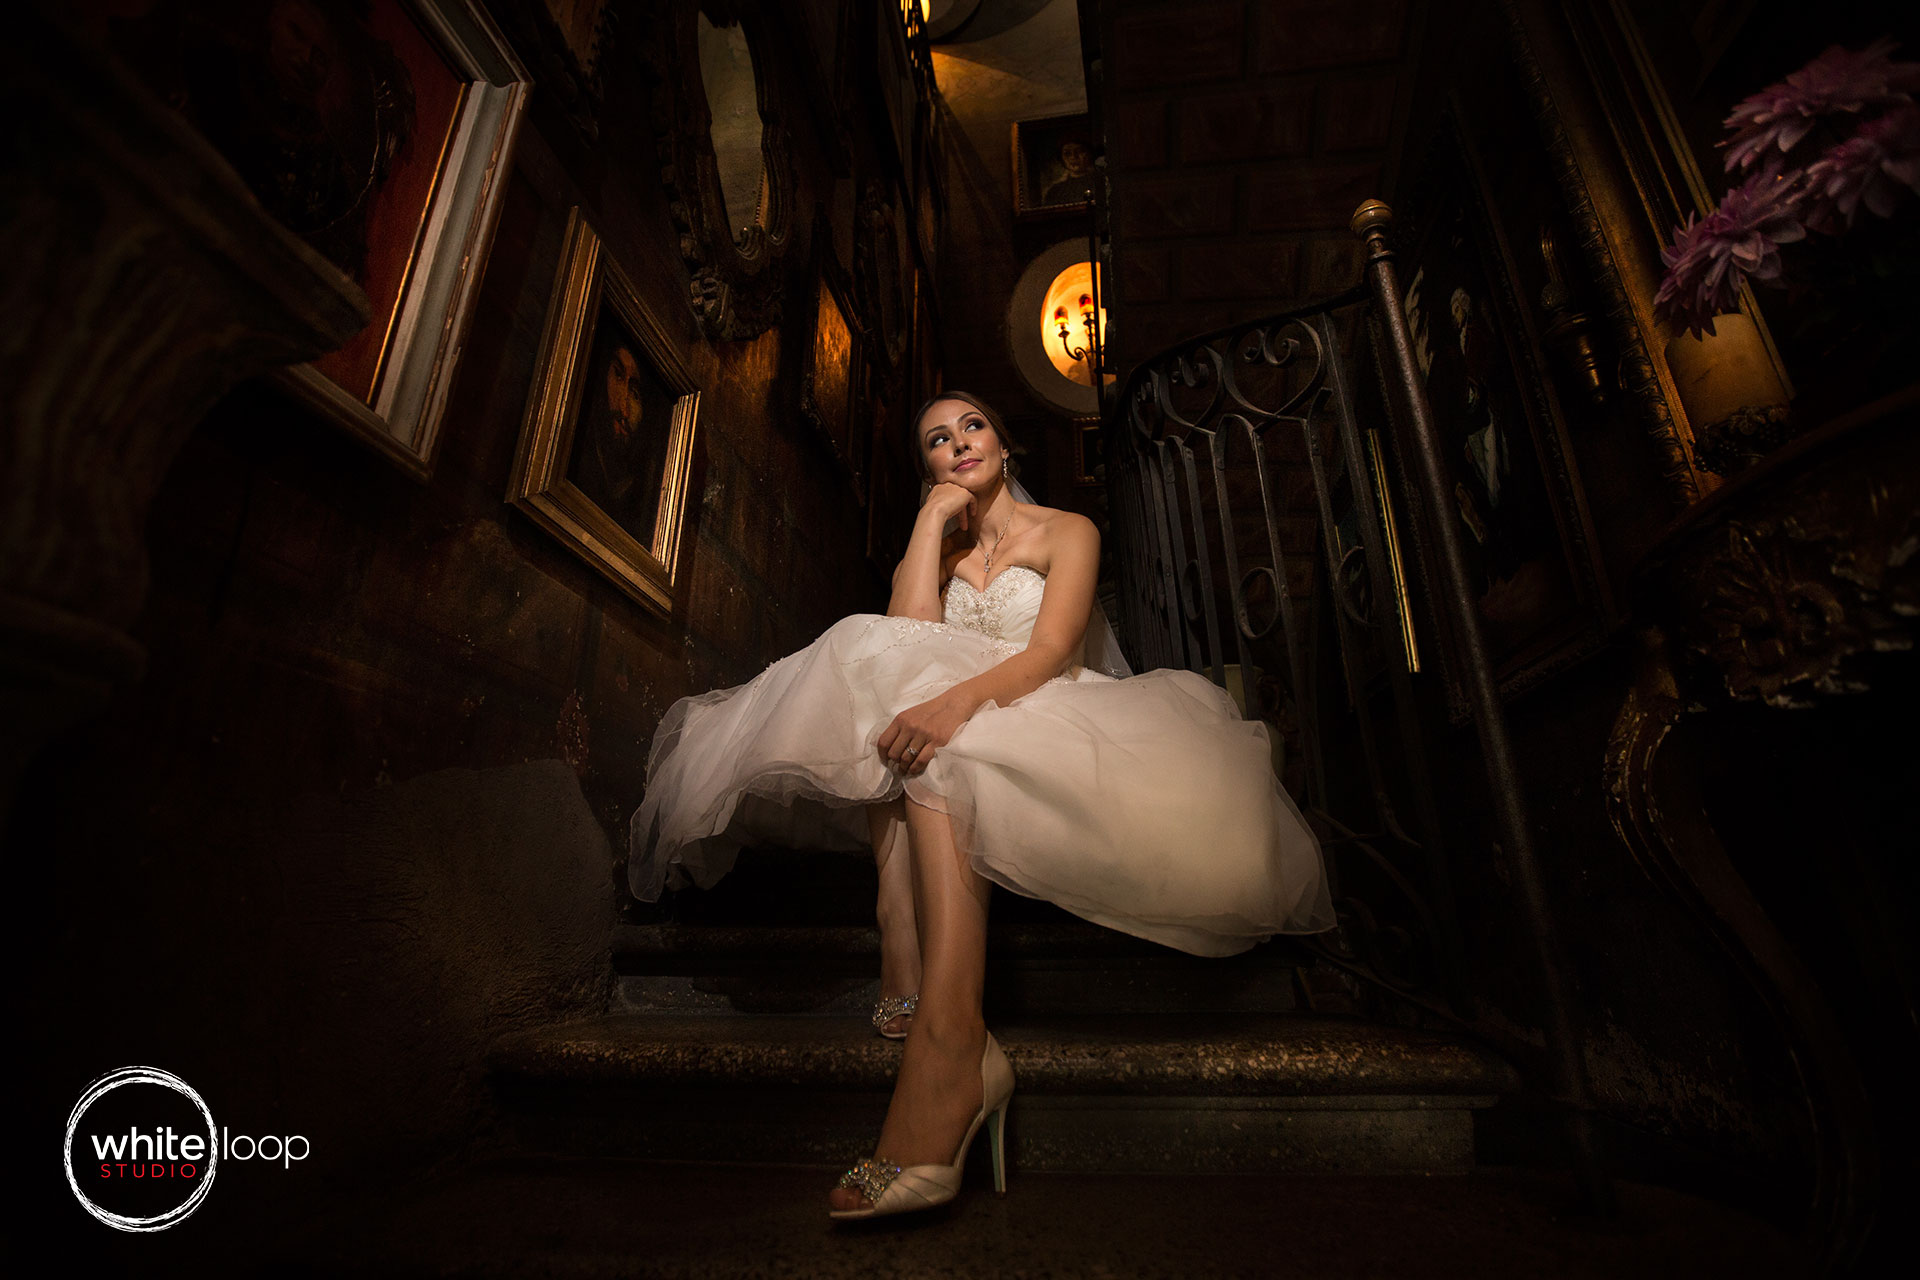 The bride is captured on the stairs, with poor light projecting the beauty of her in the wedding dress.